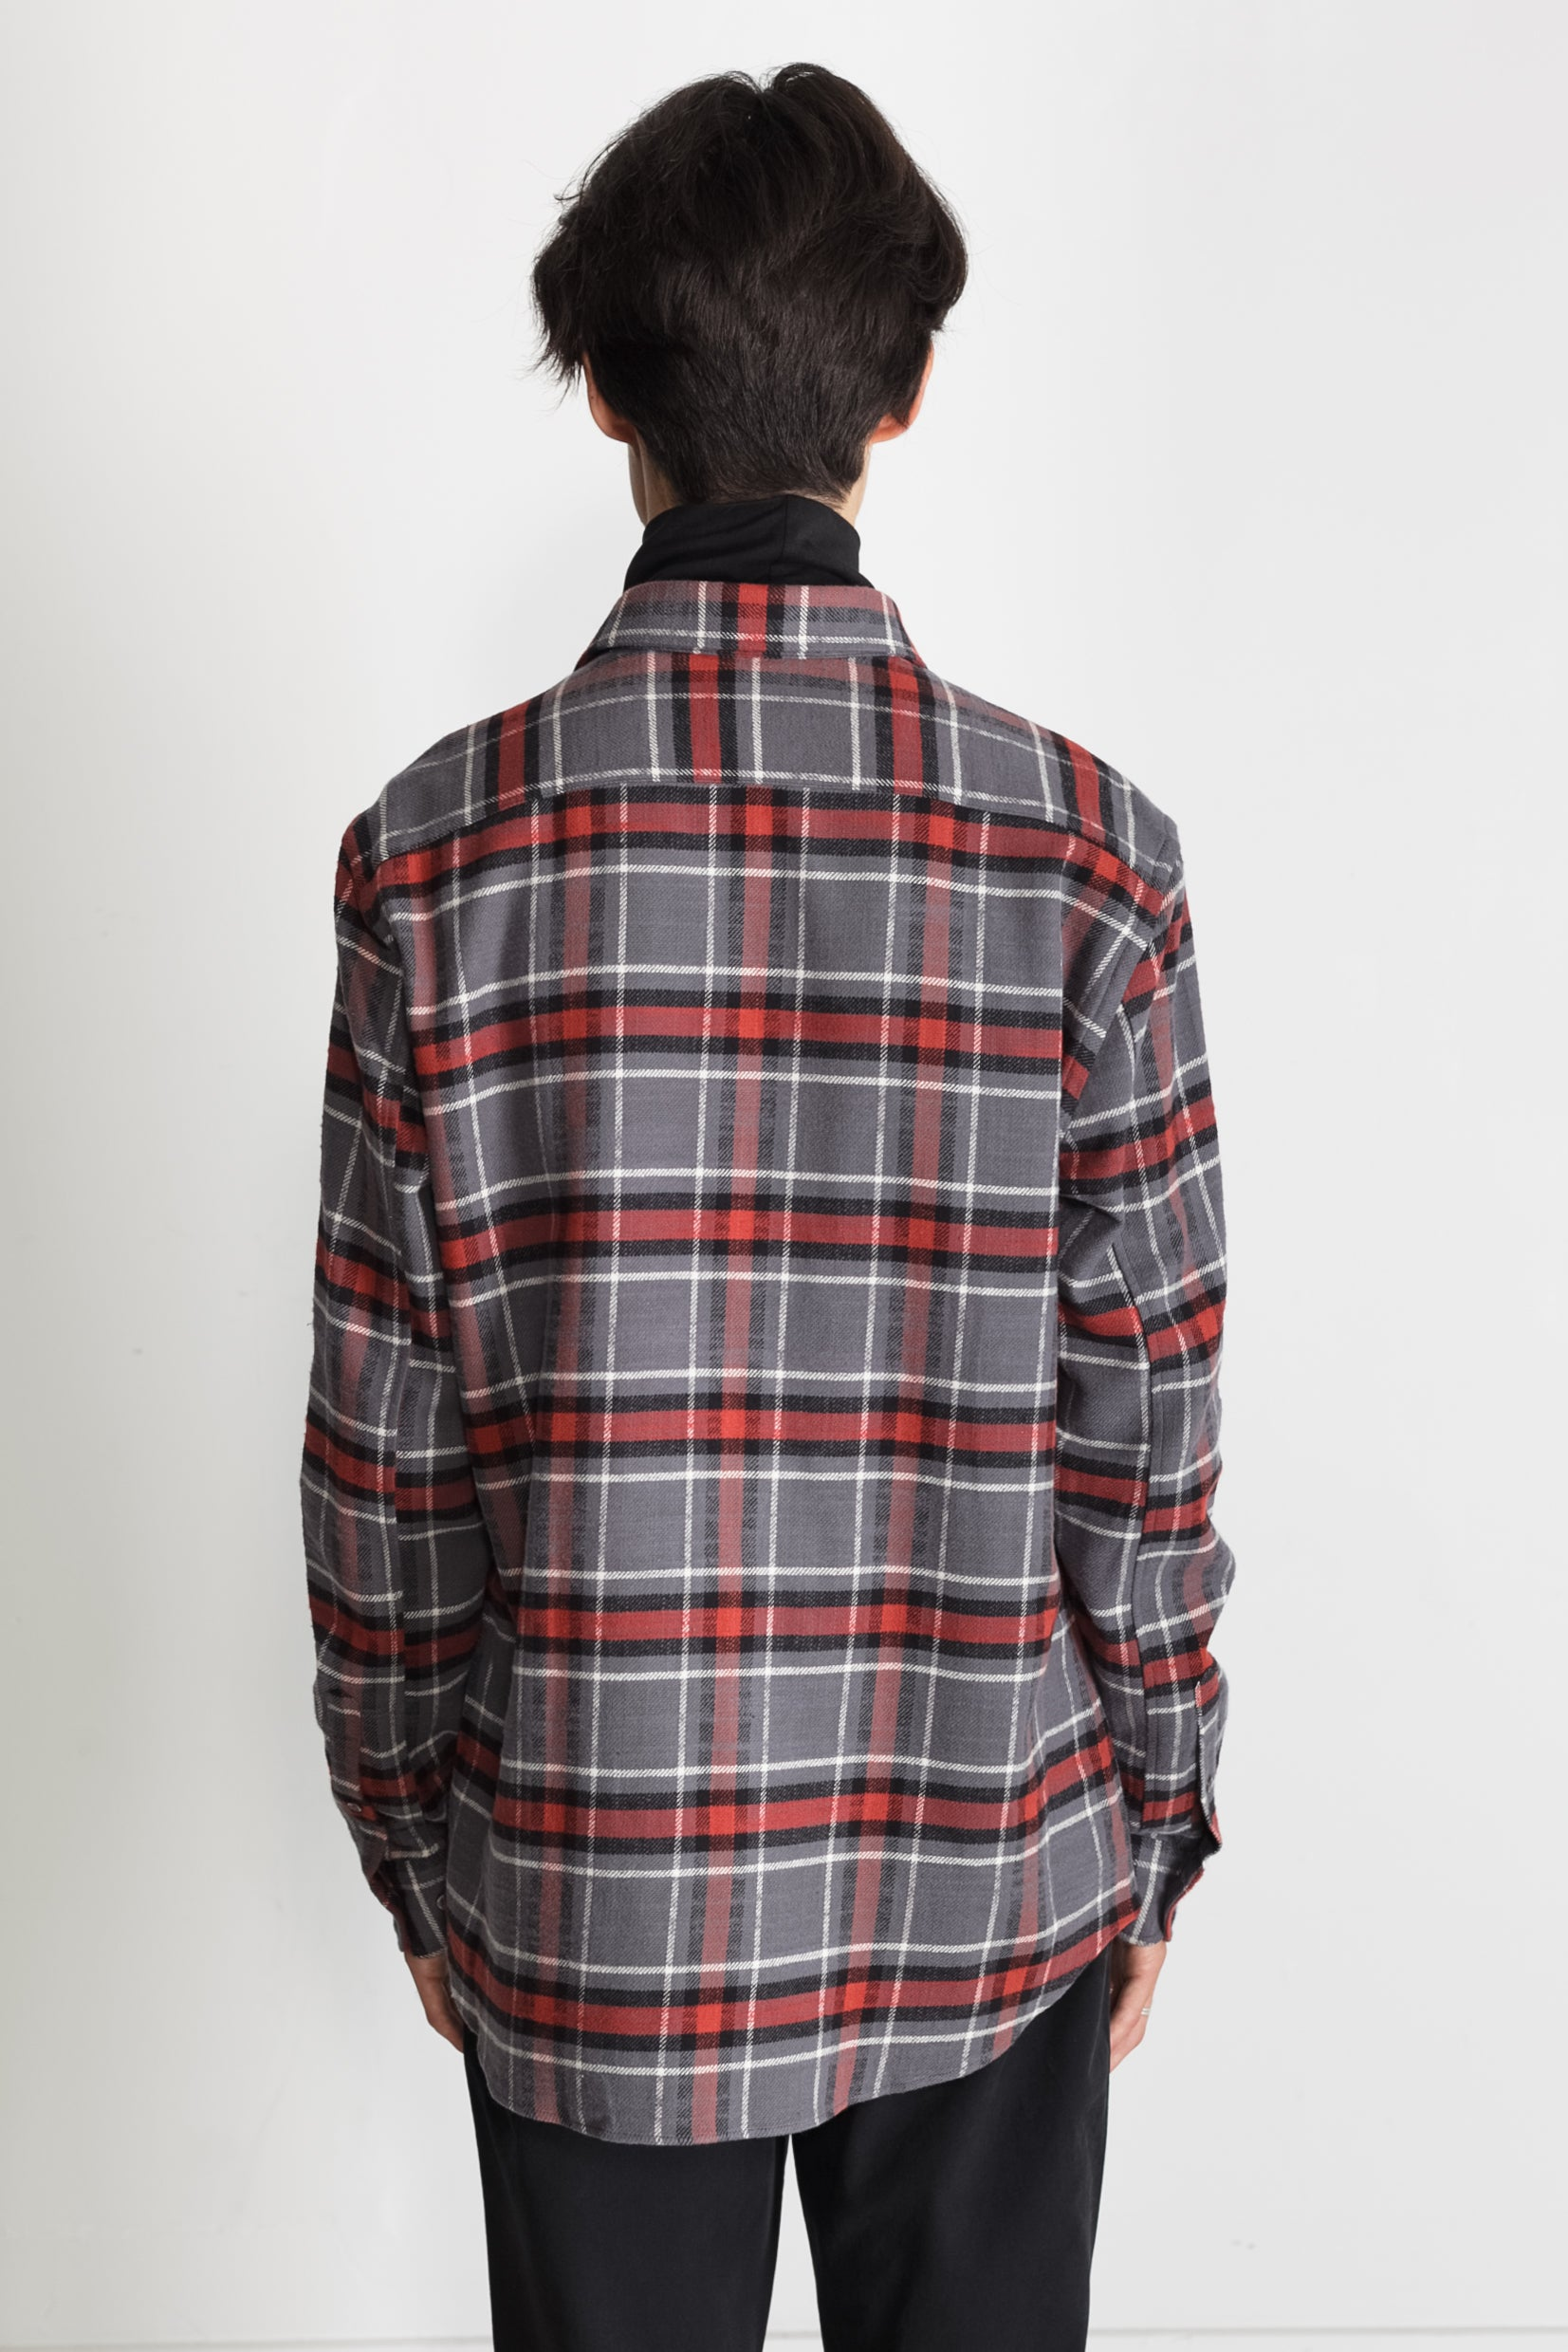 Japanese Cassidy Plaid in Grey and Rust 02